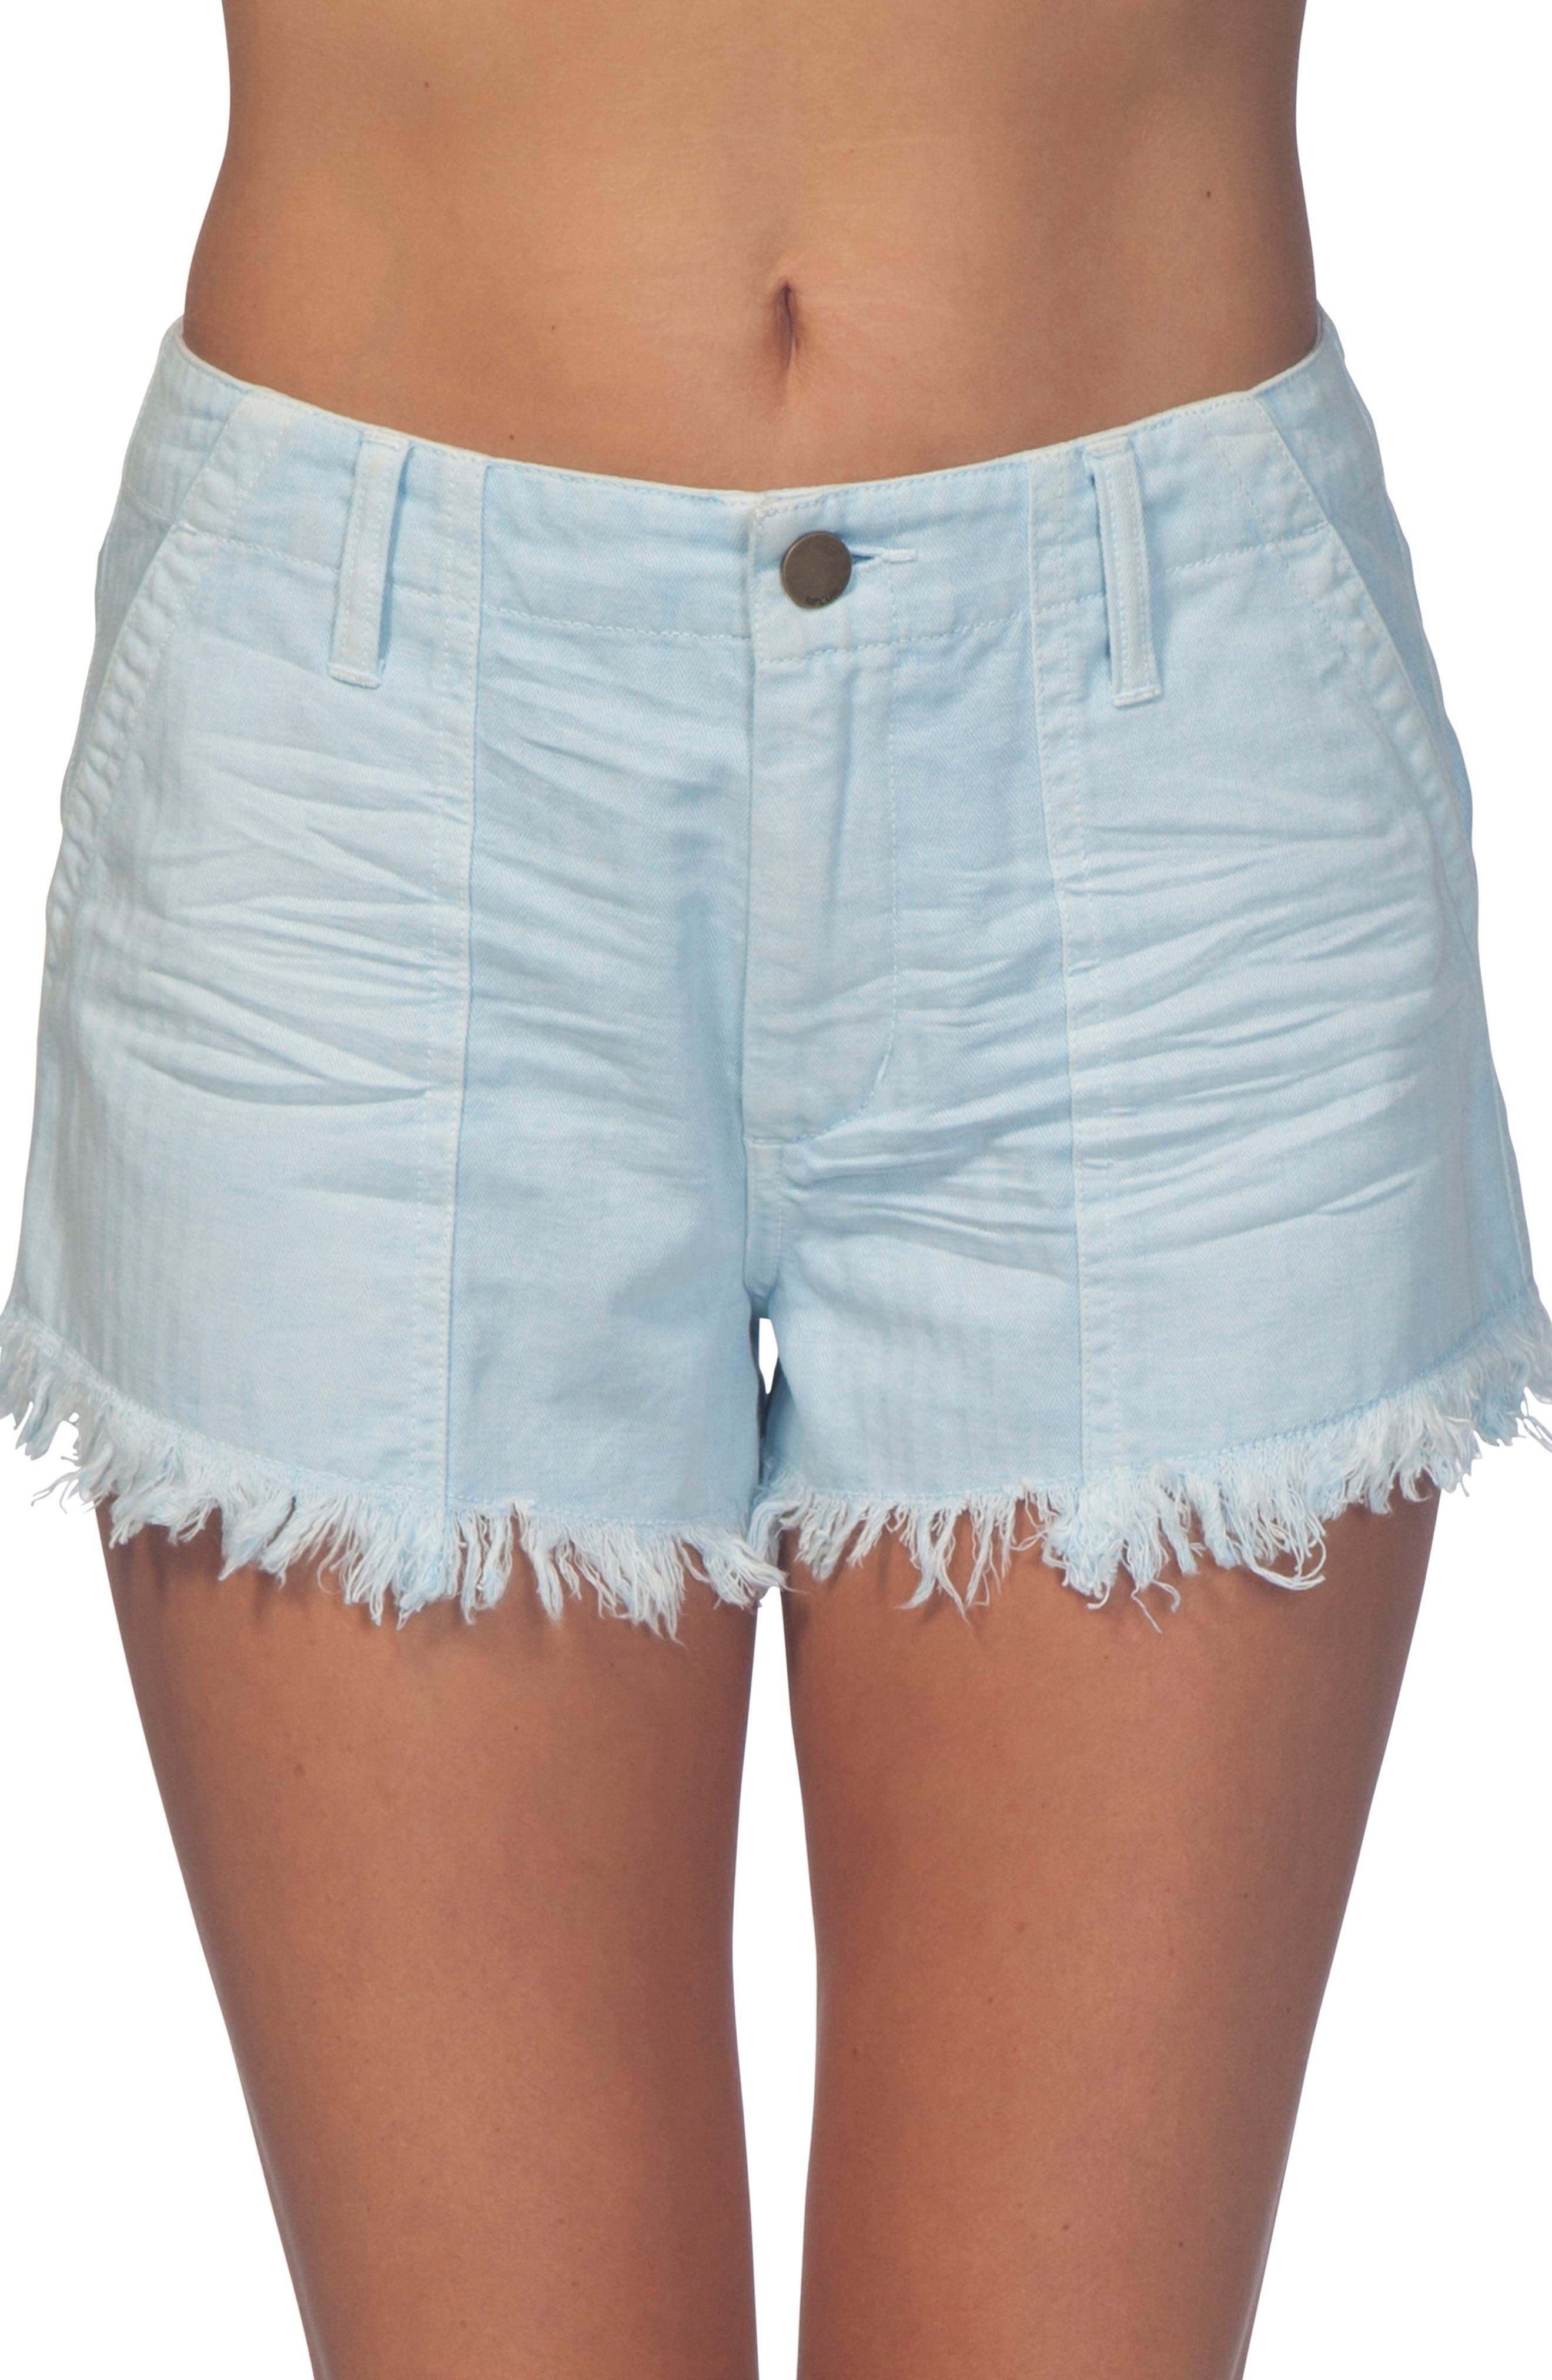 Rip Curl Vista Cutoff Denim Shorts